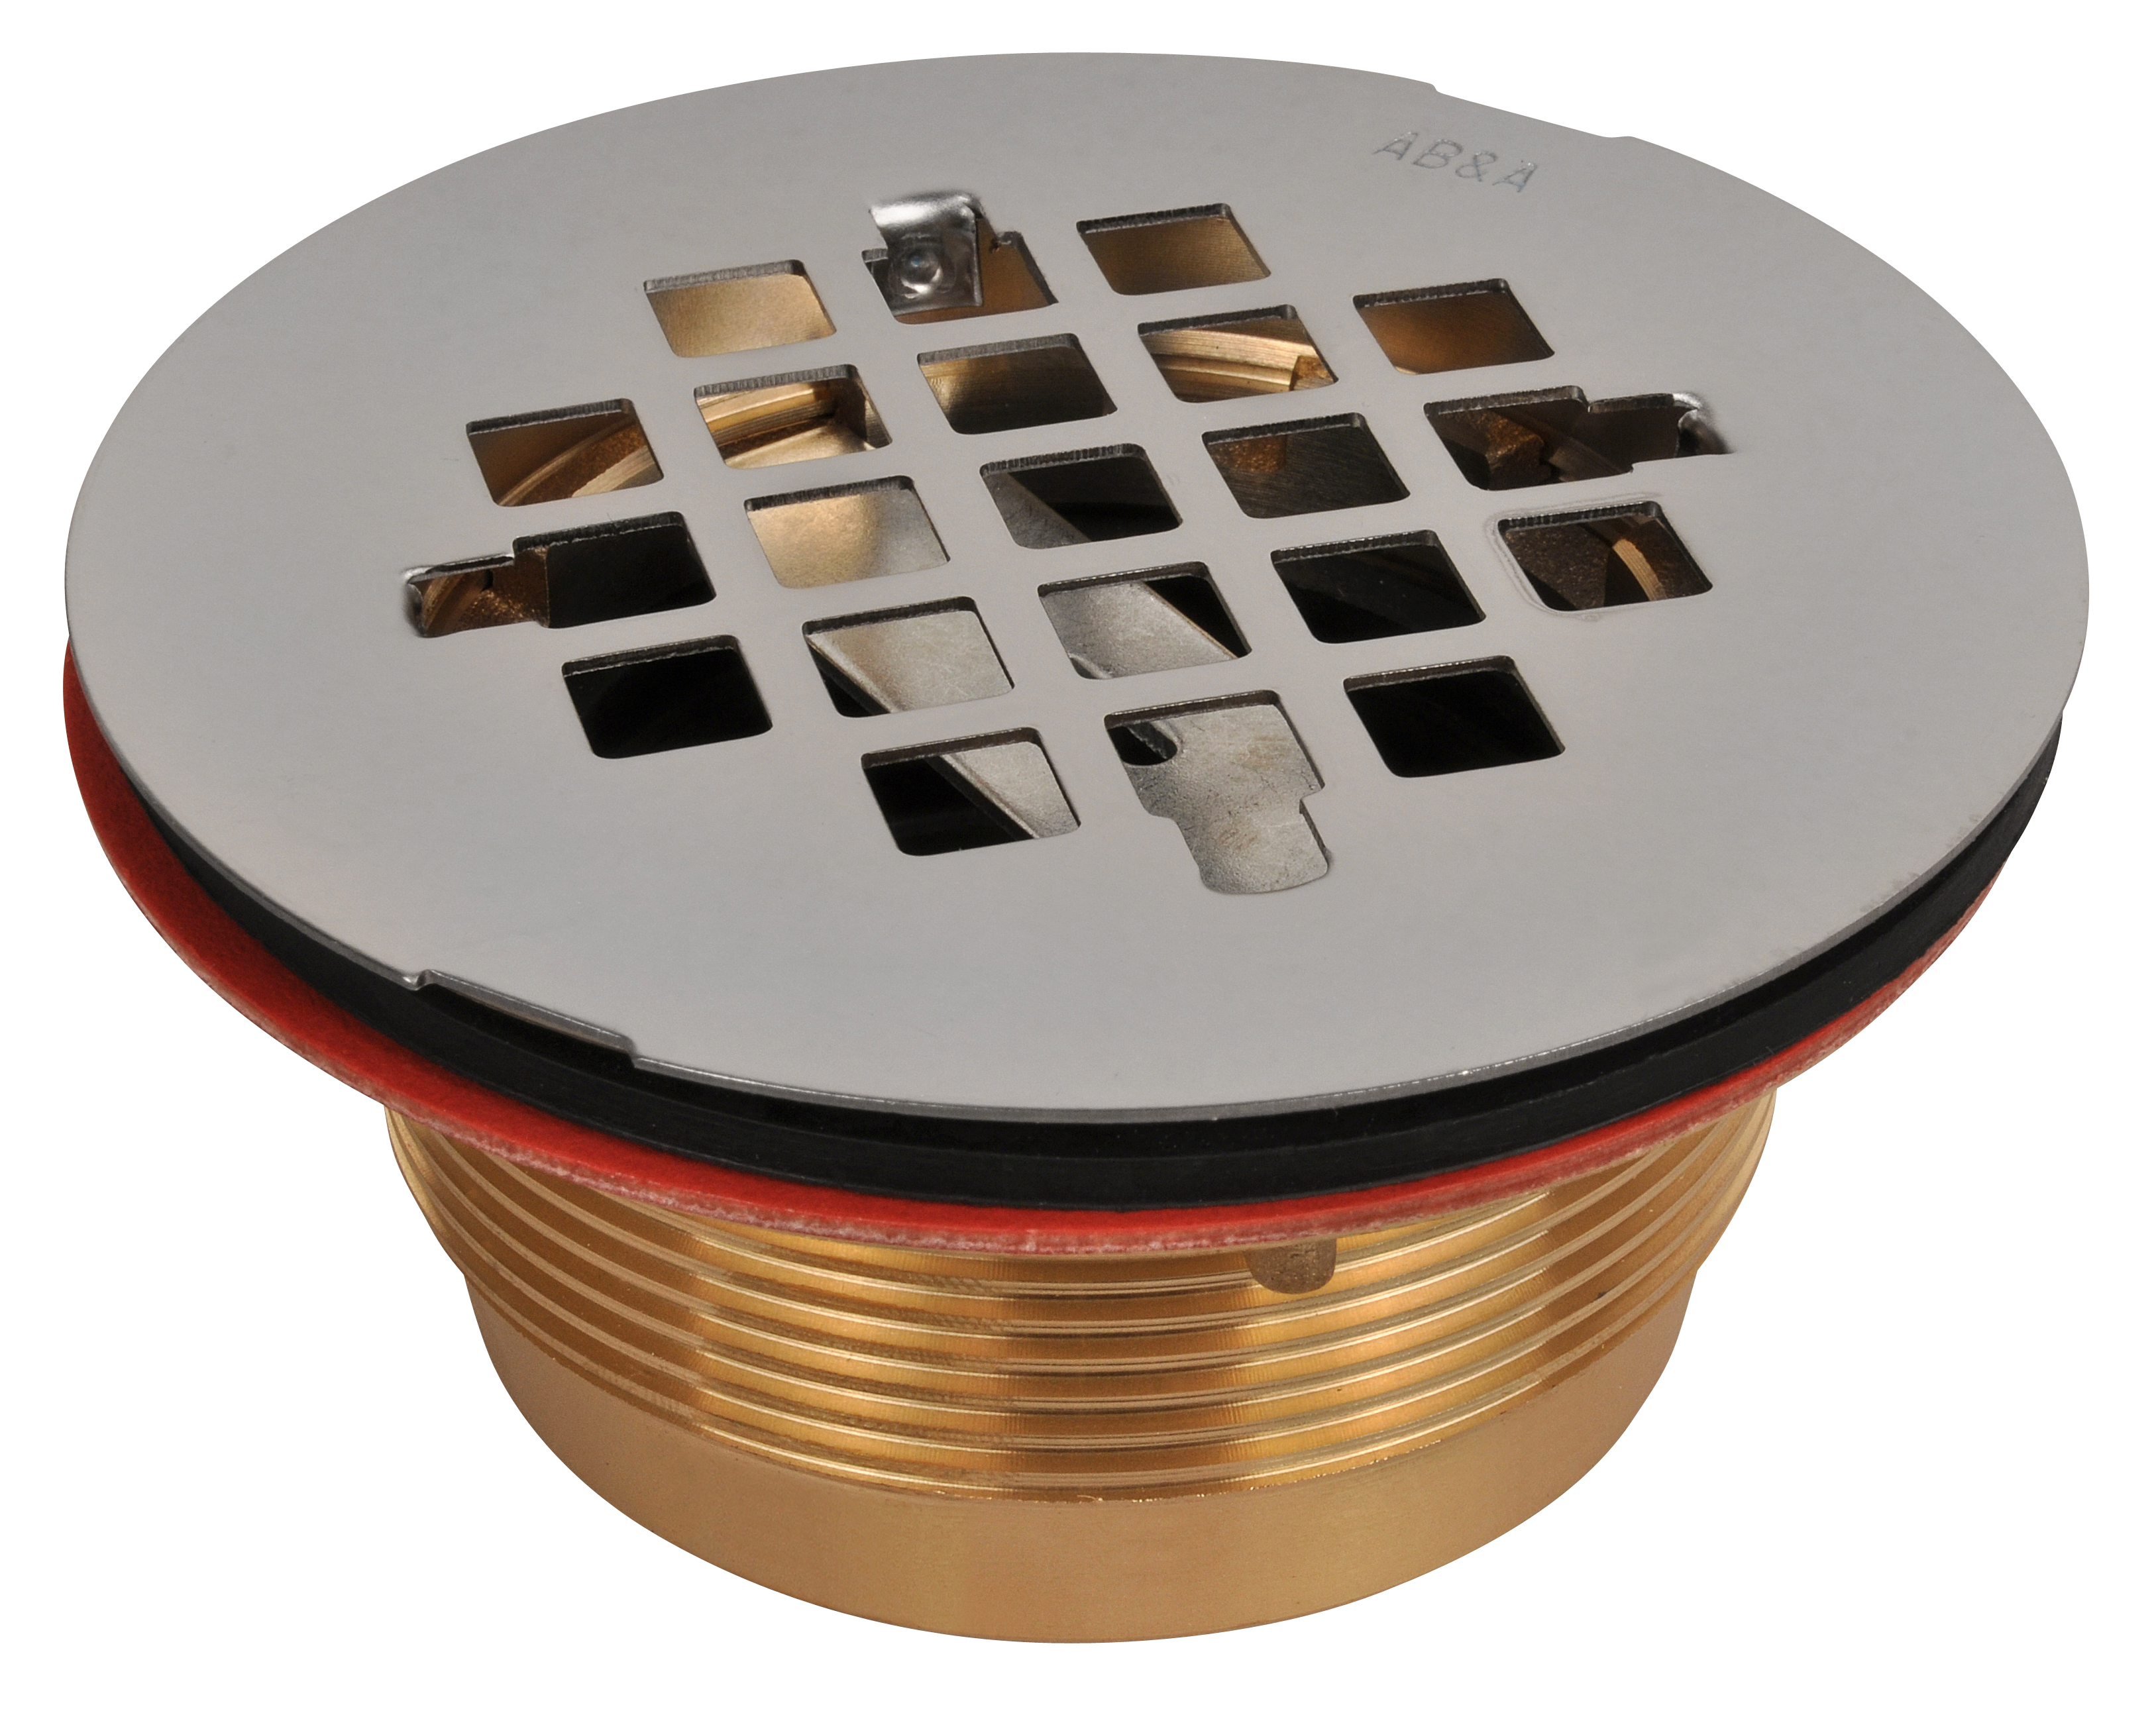 AB&A Fiberglass and Acrylic Floor Shower Drain, No-Caulk 2- Brass Body - Stainless Steel Strainer Snap-in (7200 Series)